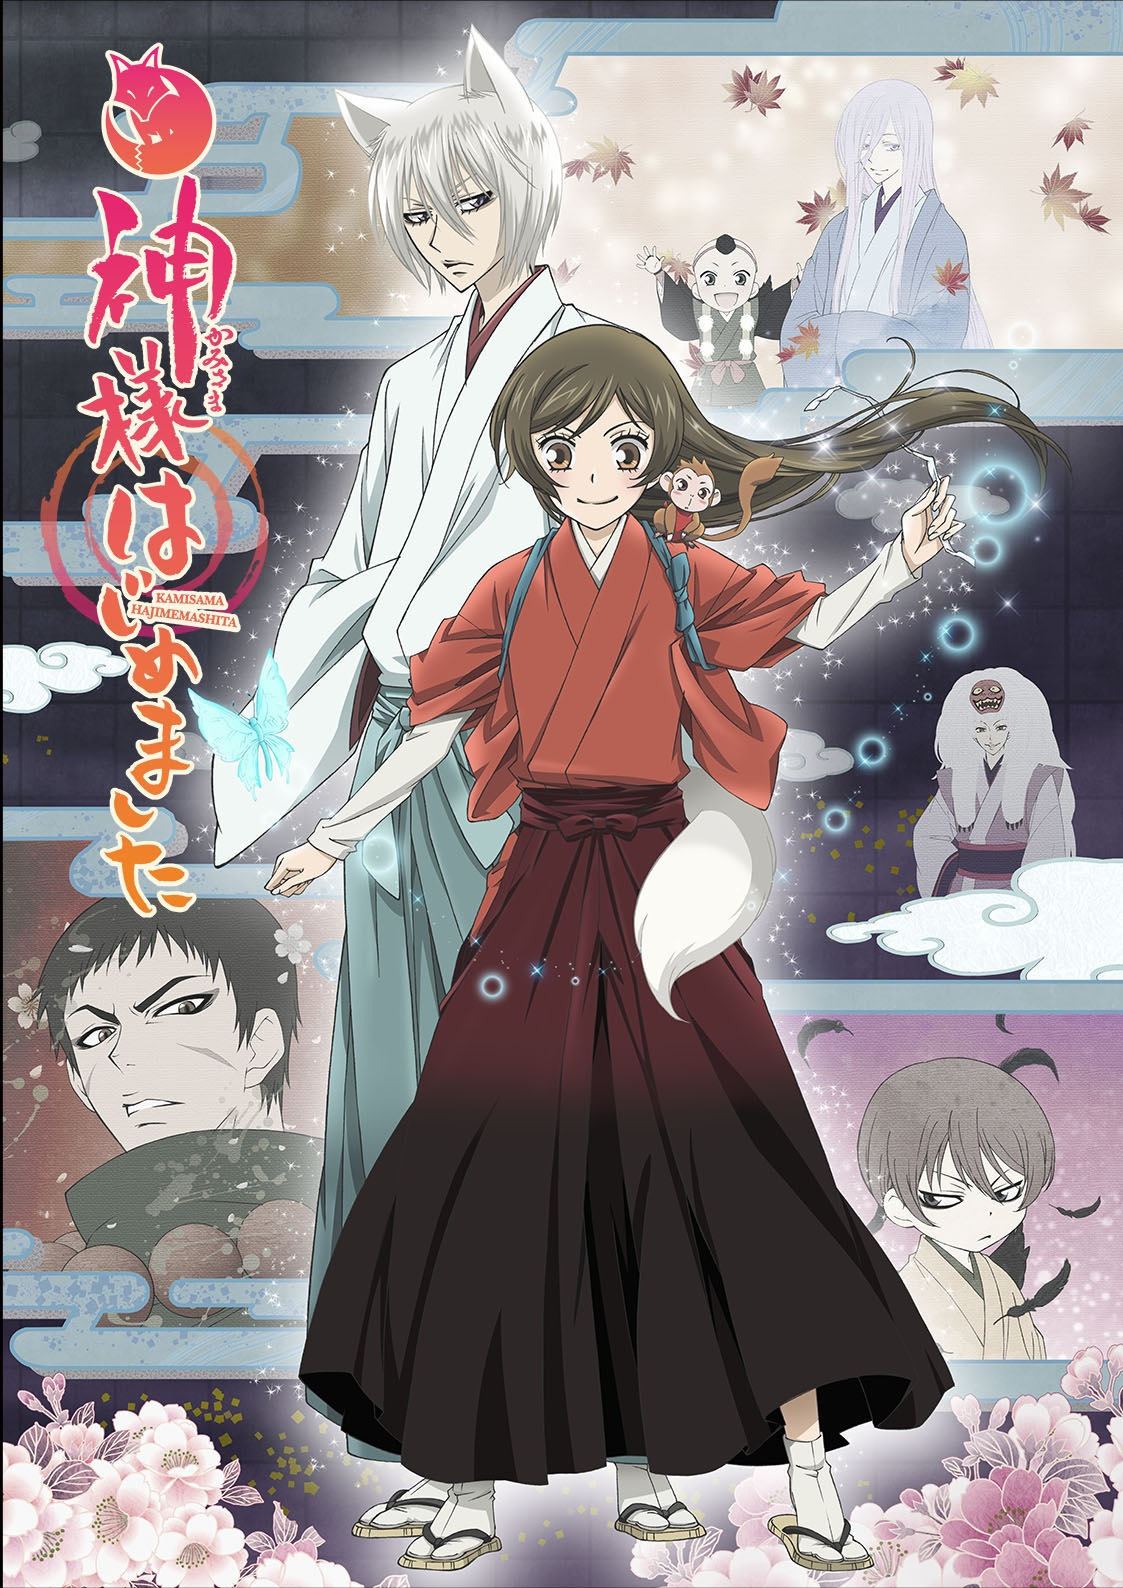 11 [Similar Anime] Like Kamisama Kiss Season 2